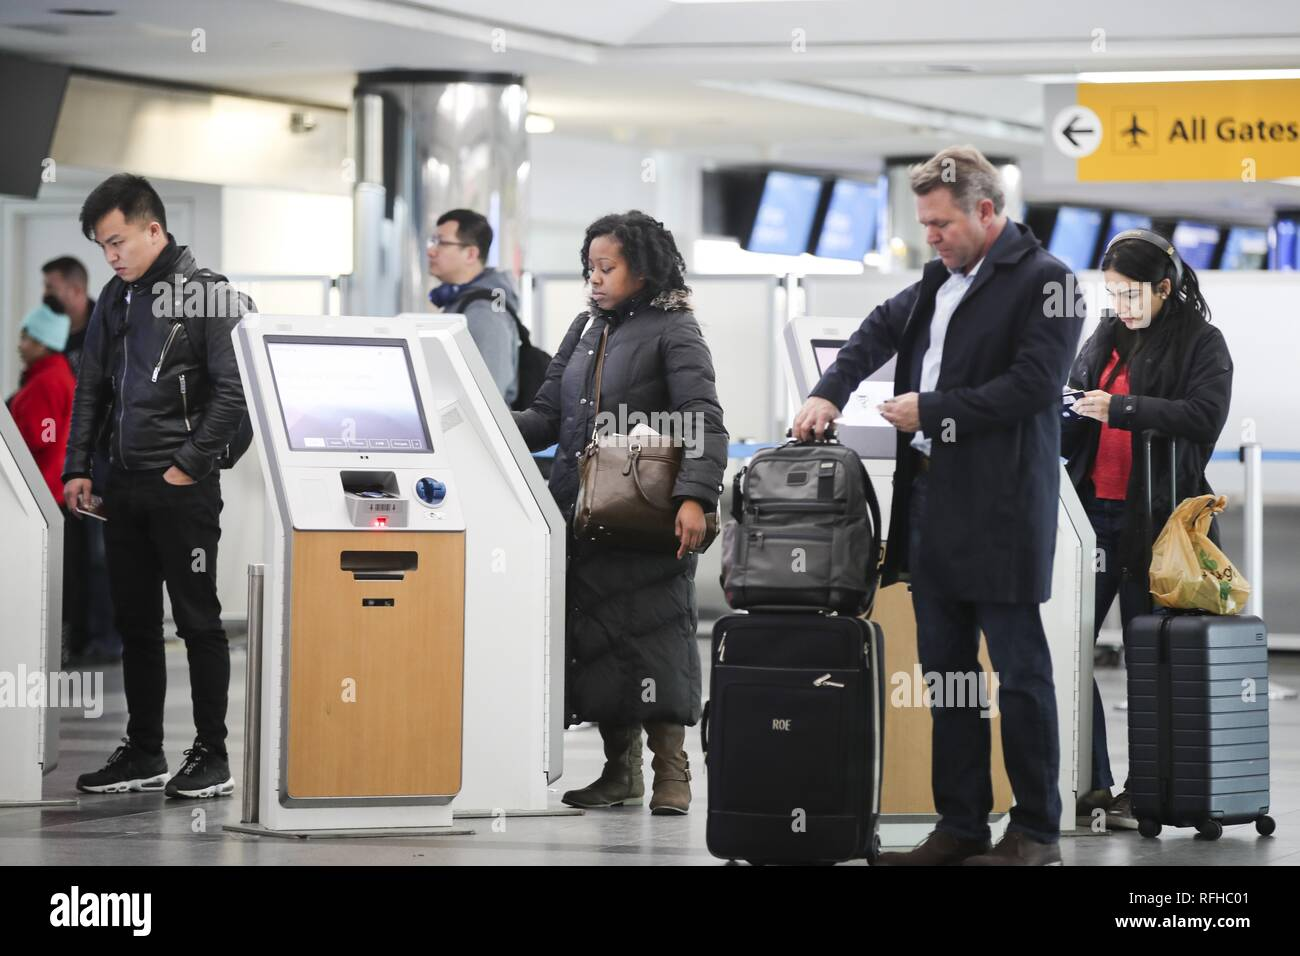 Beijing, USA. 25th Jan, 2019. Passengers use self-service kiosks to check in at the LaGuardia Airport in New York, the United States, on Jan. 25, 2019. The U.S. Federal Aviation Administration on Friday halted flights bound for New York City's LaGuardia Airport, due to staff shortage caused by the historic government shutdown. Credit: Wang Ying/Xinhua/Alamy Live News - Stock Image